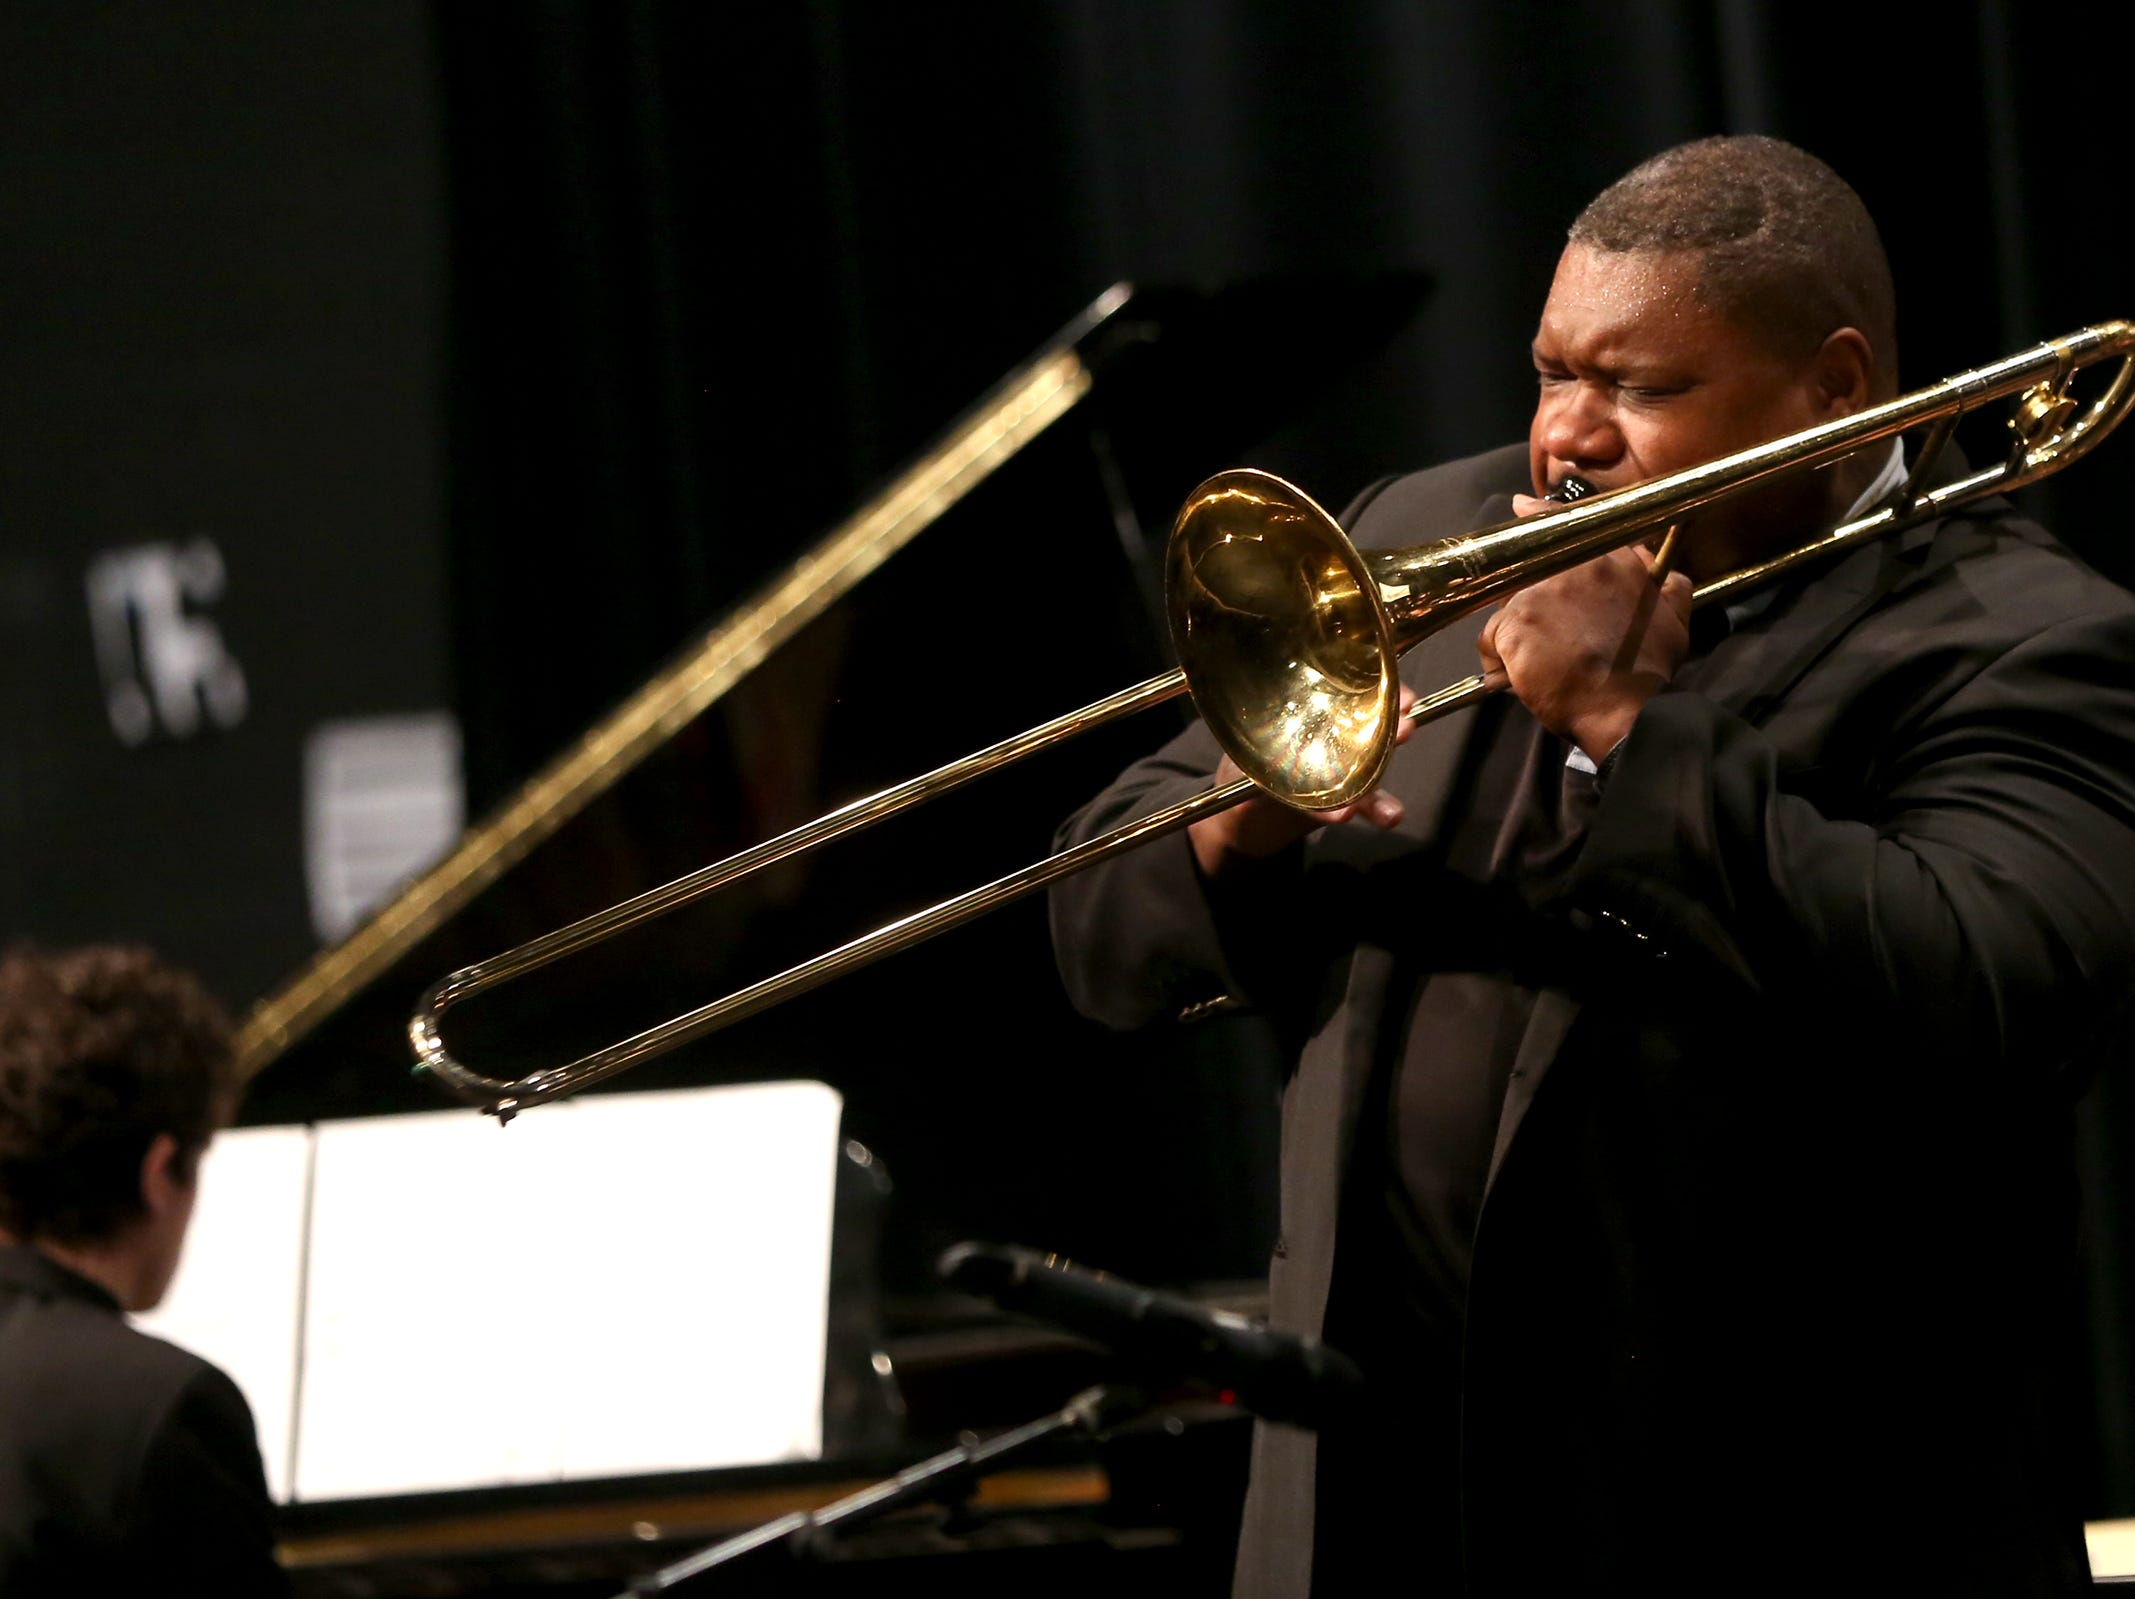 Jazz trombonist Wycliffe A. Gordon performs with West Salem High School students at the annual West Salem Jazz Festival at West Salem High School on Saturday, Feb. 9, 2019.